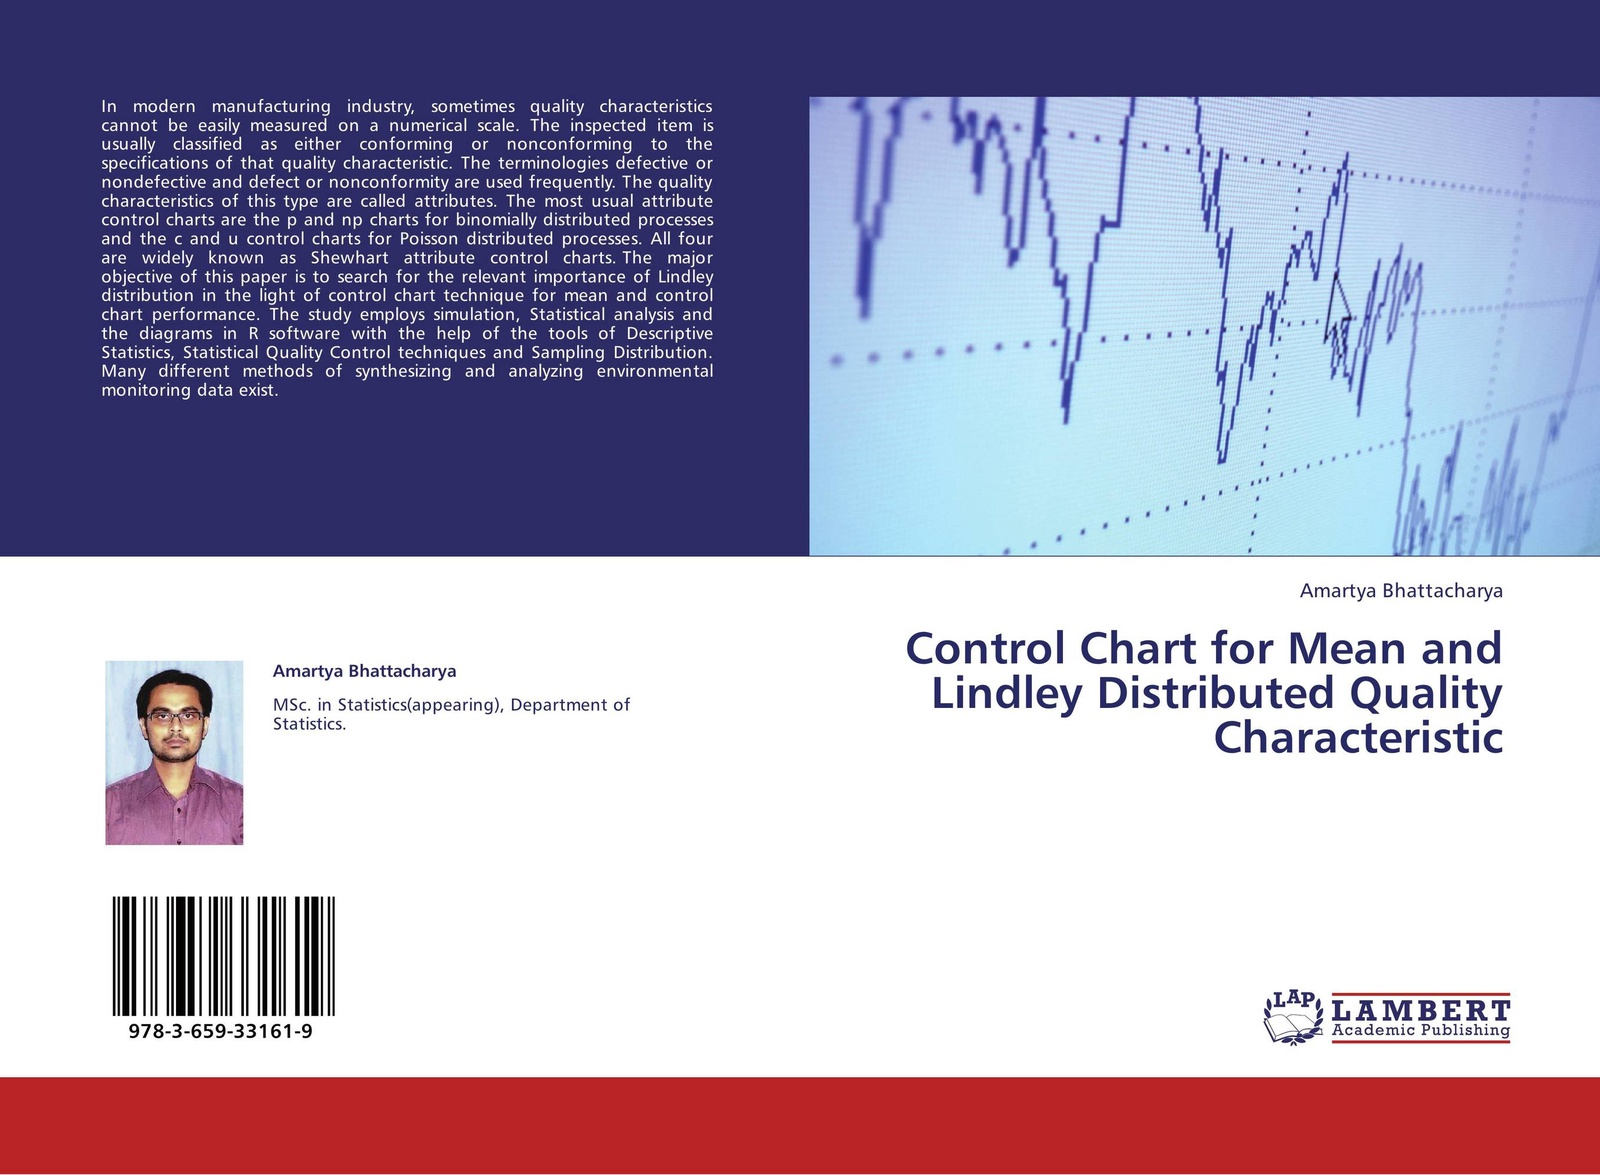 лучшая цена Amartya Bhattacharya Control Chart for Mean and Lindley Distributed Quality Characteristic